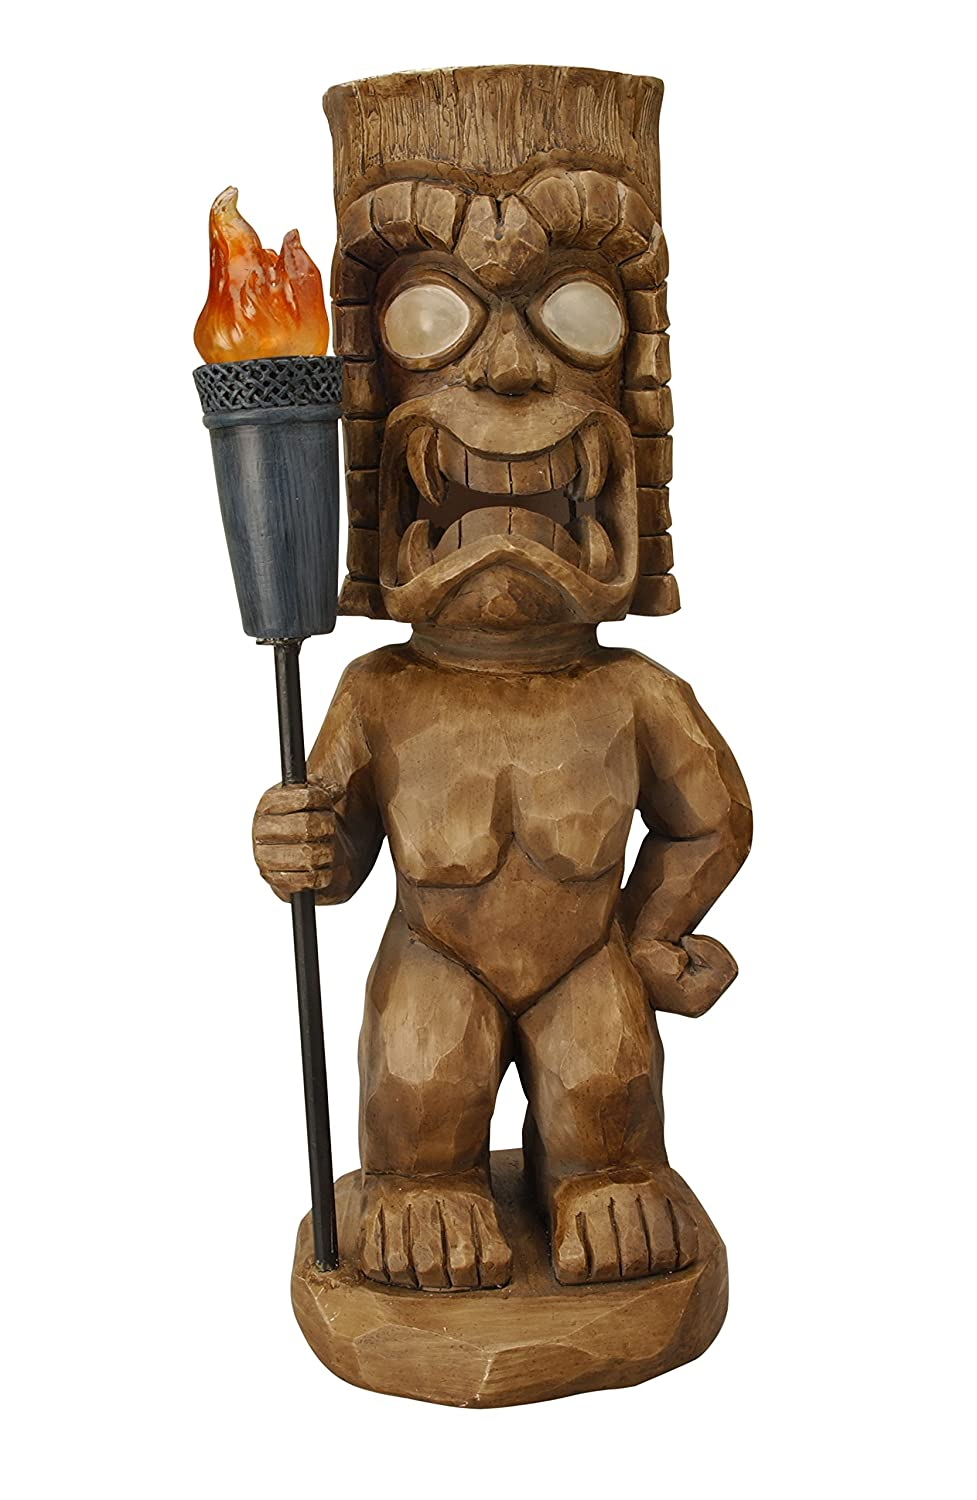 Moonrays 95960 Tiki Themed Outdoor Solar Light Garden Gnome Tiki Warrior